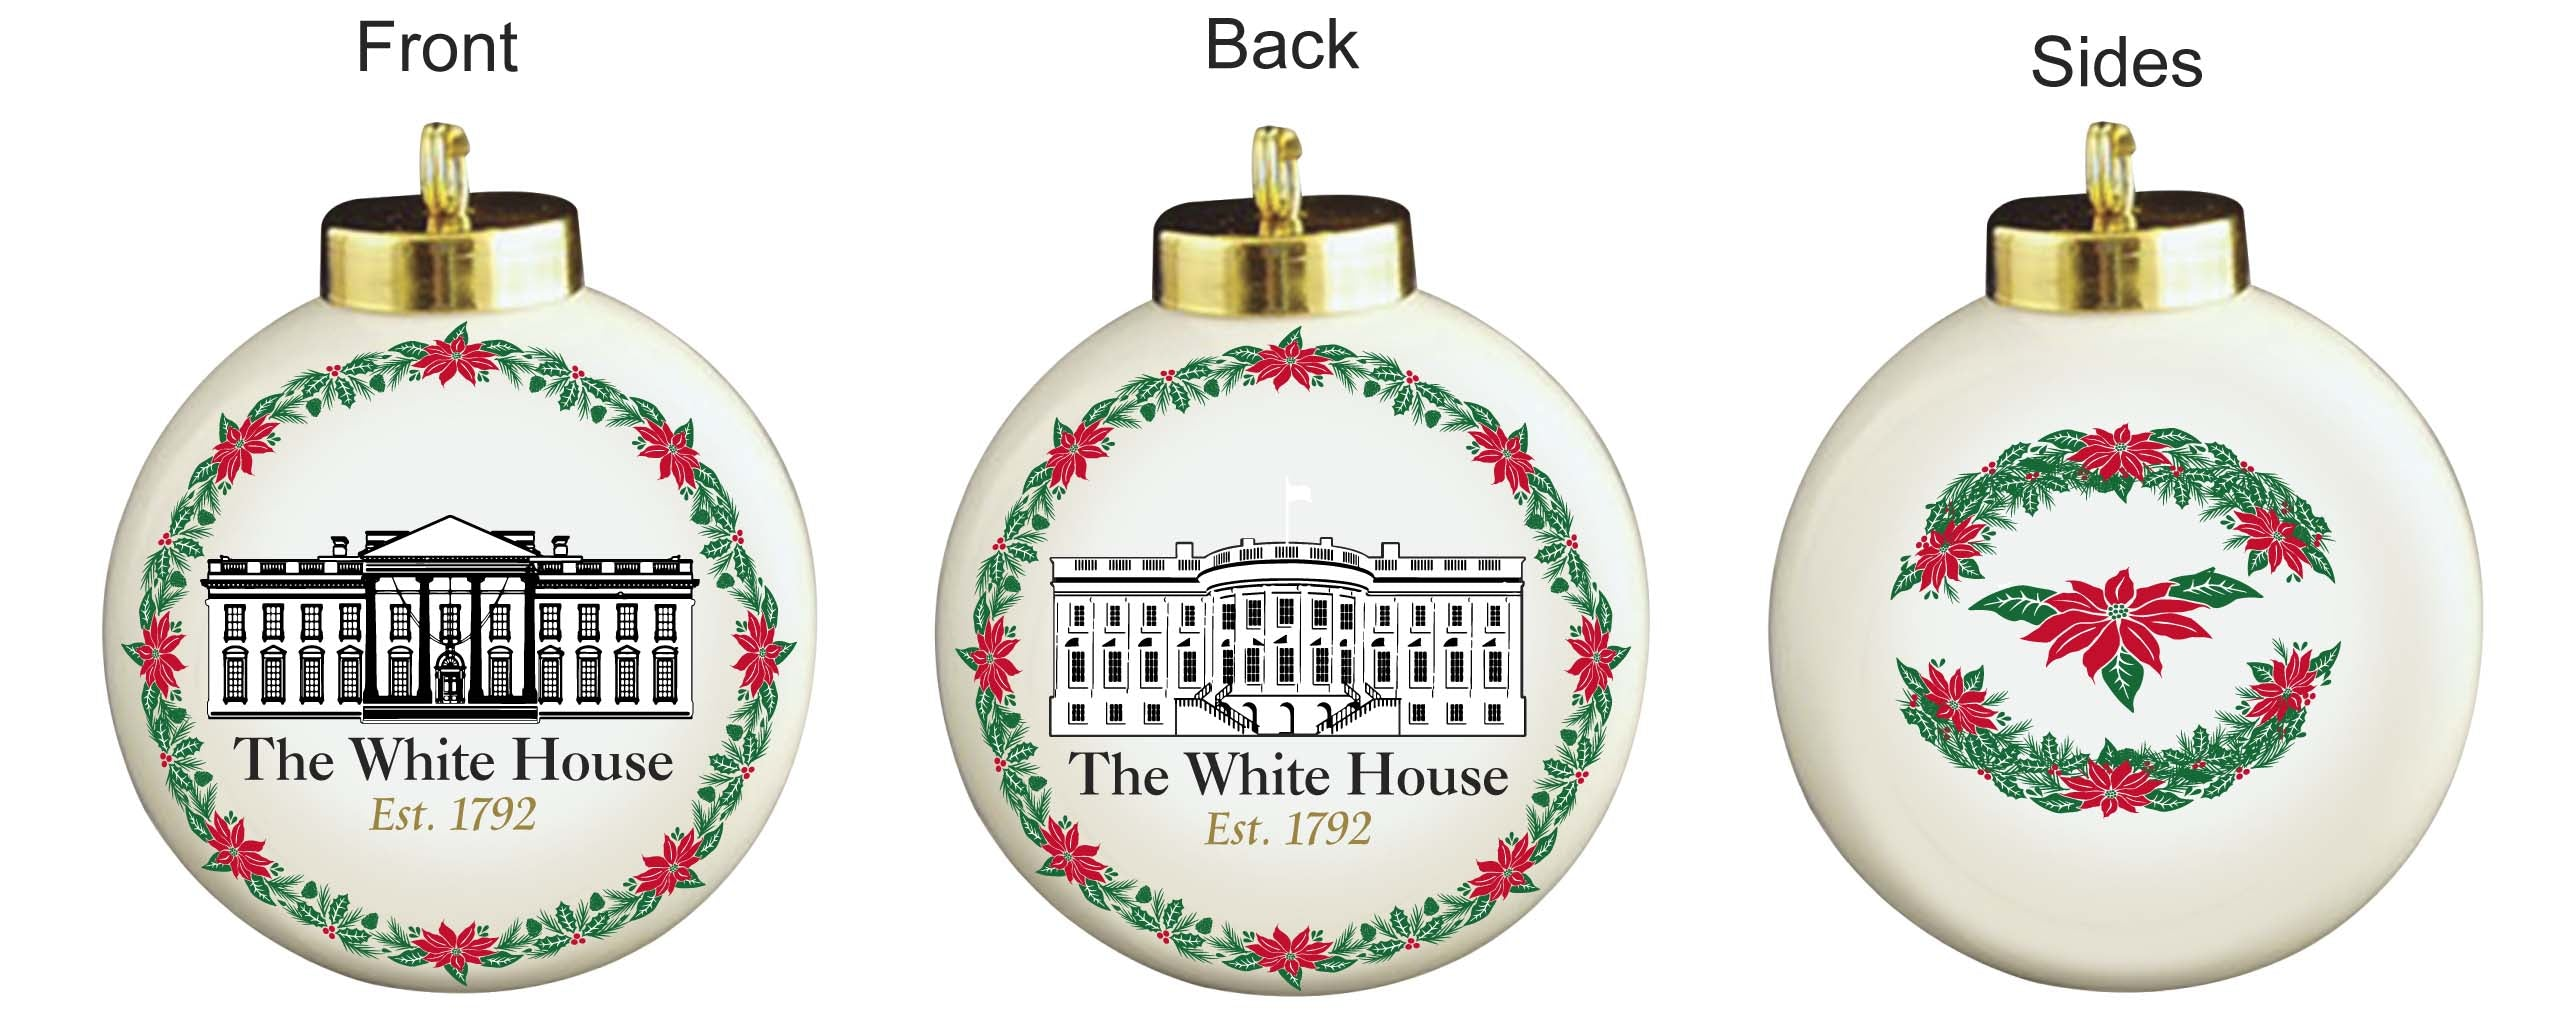 Souvenirs Page 3 - White House Gifts